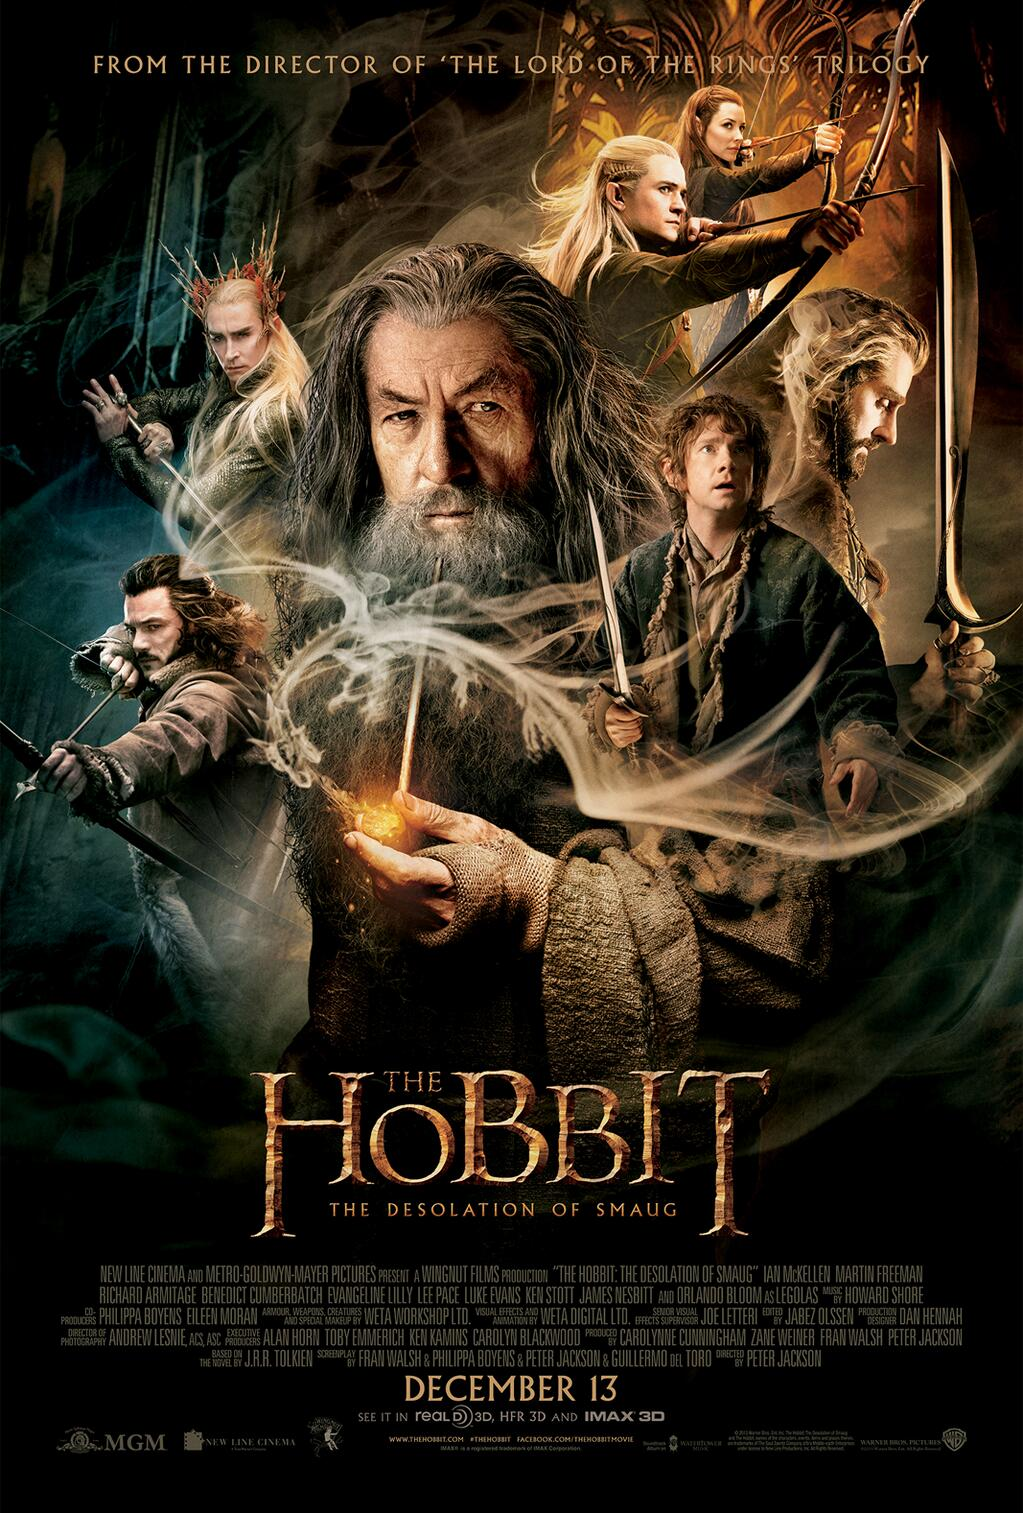 THE HOBBIT 2 by Peter Jackson